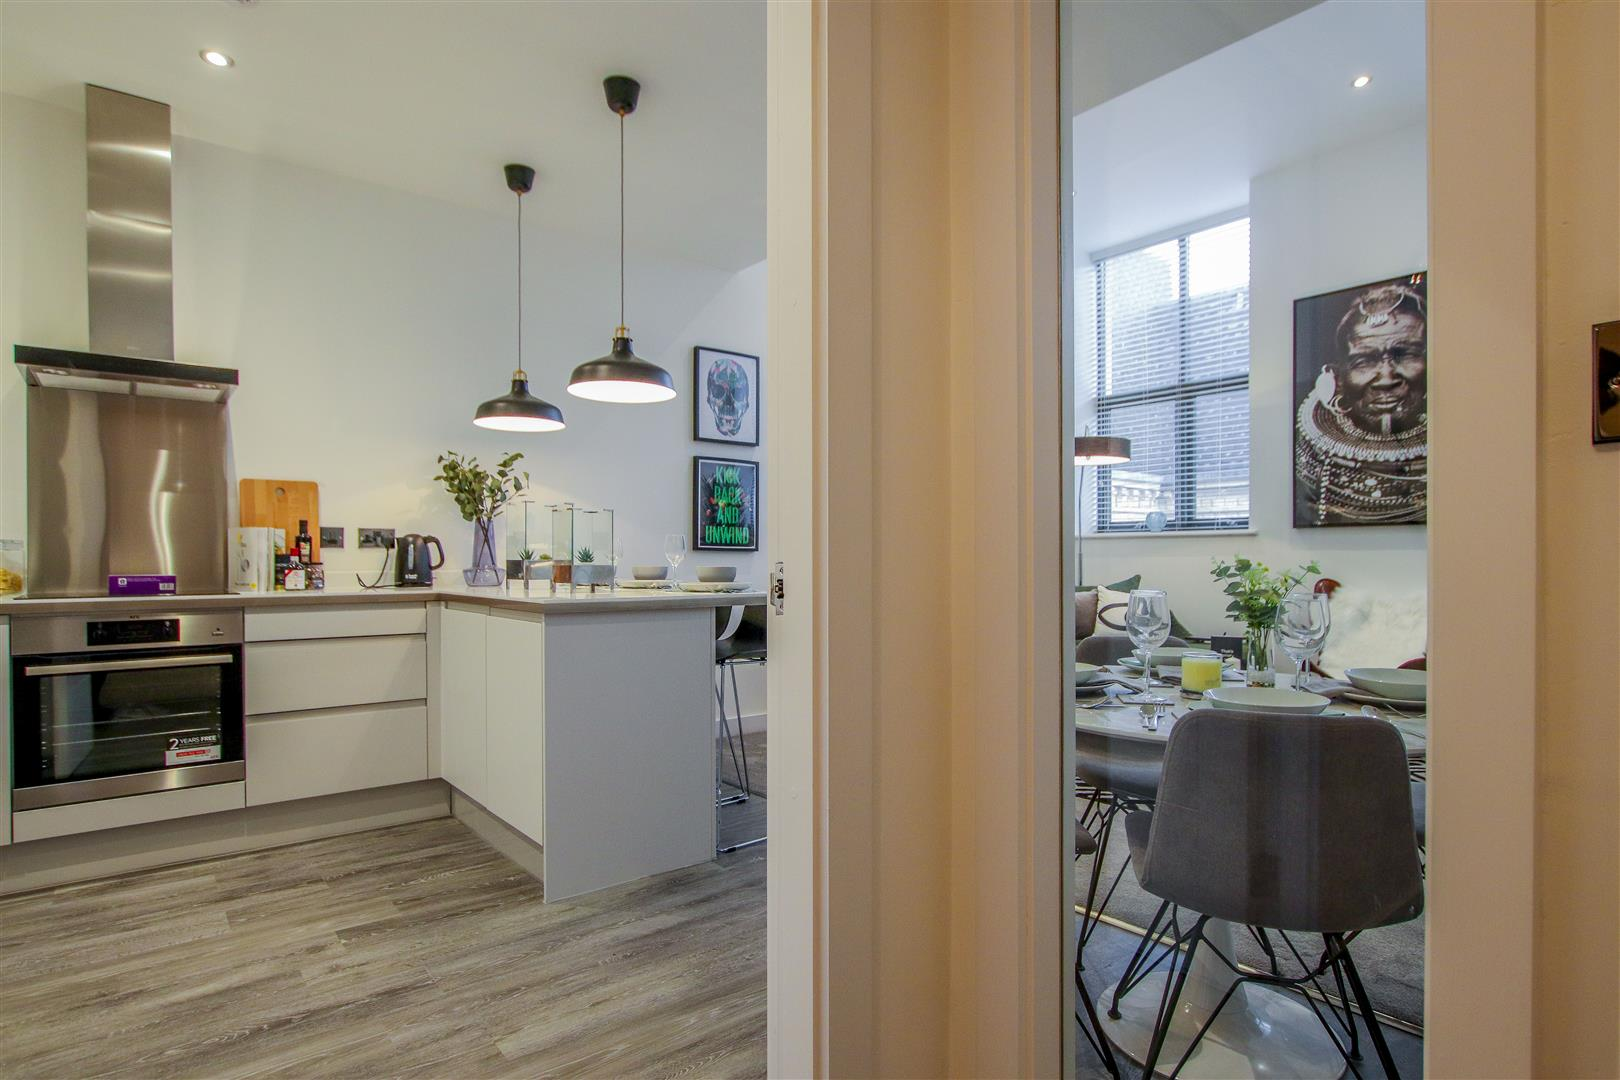 2 Bedroom Apartment For Sale - 23.JPG